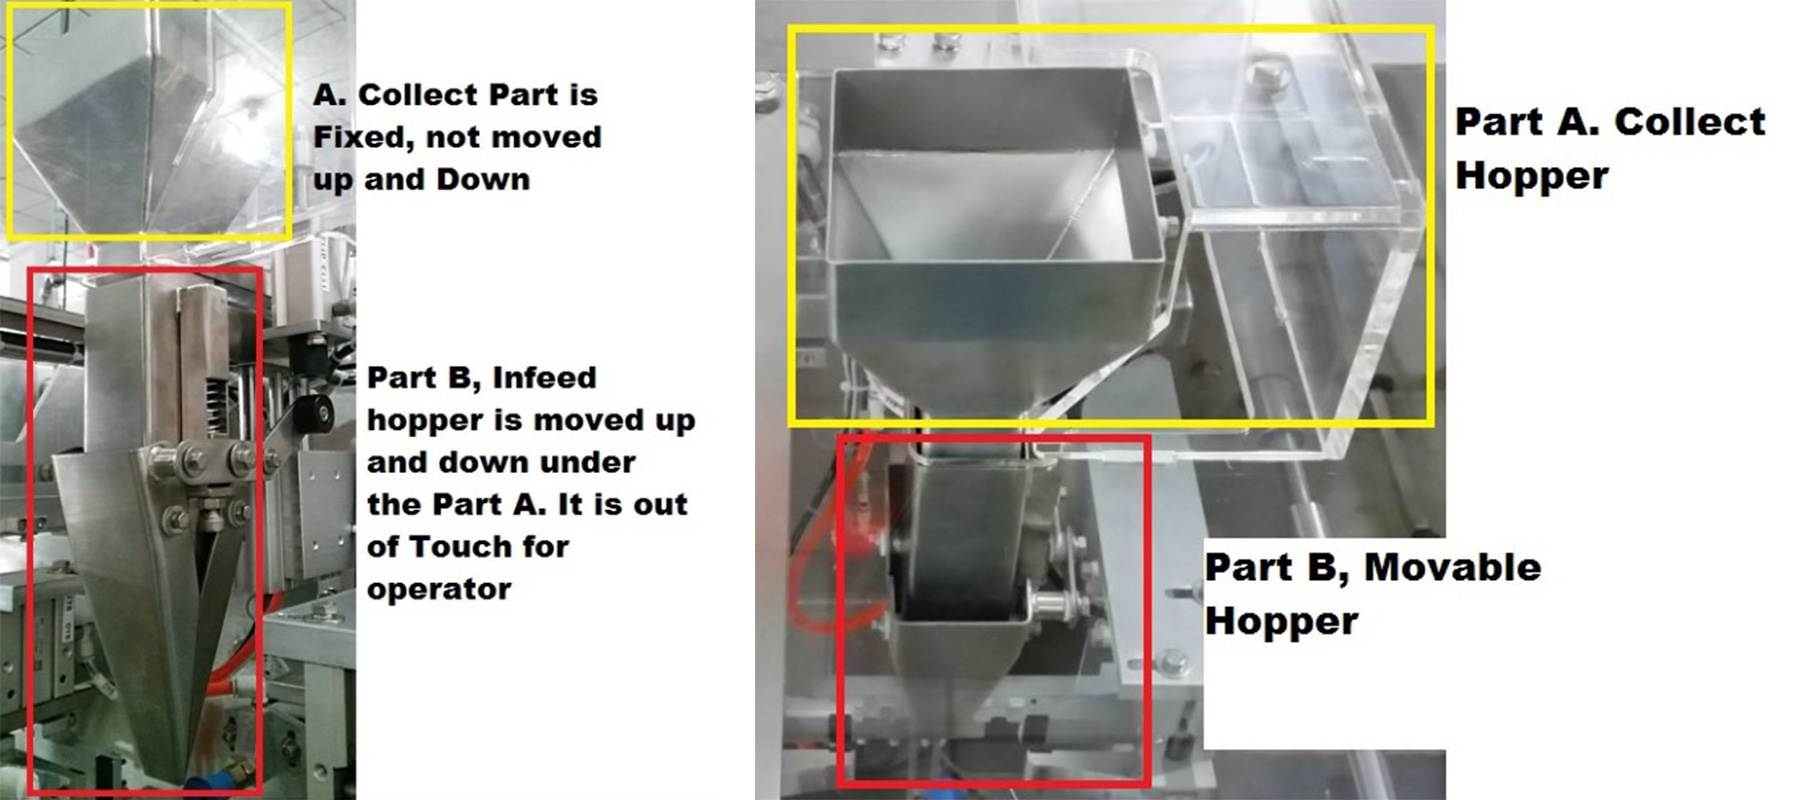 Keepac duplex horizontal form fill seal machine design for zipper bag-8